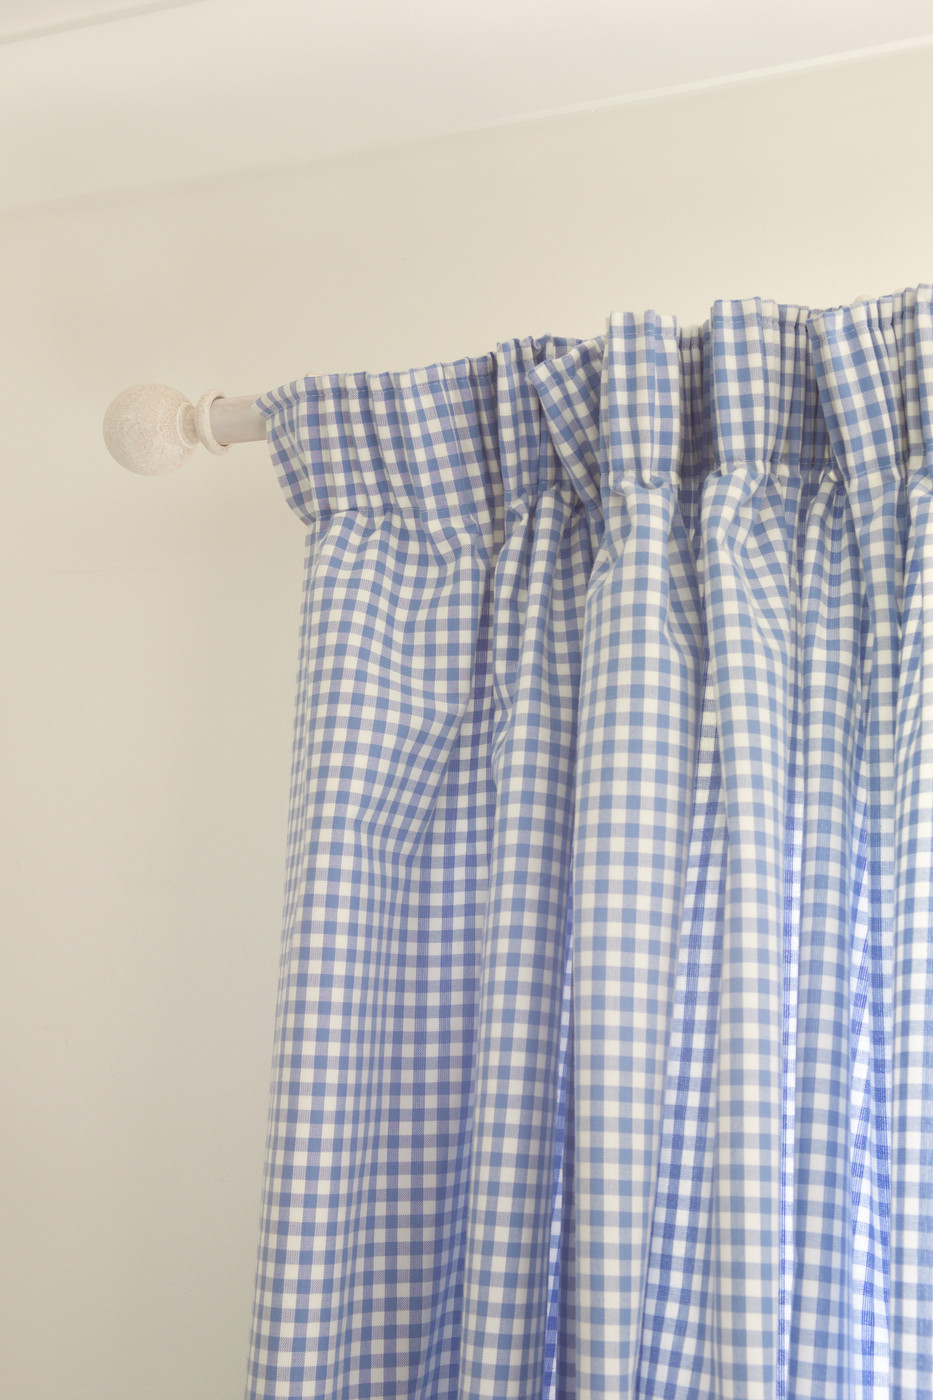 Gingham pattern photos design ideas remodel and decor for Gingham decorating ideas